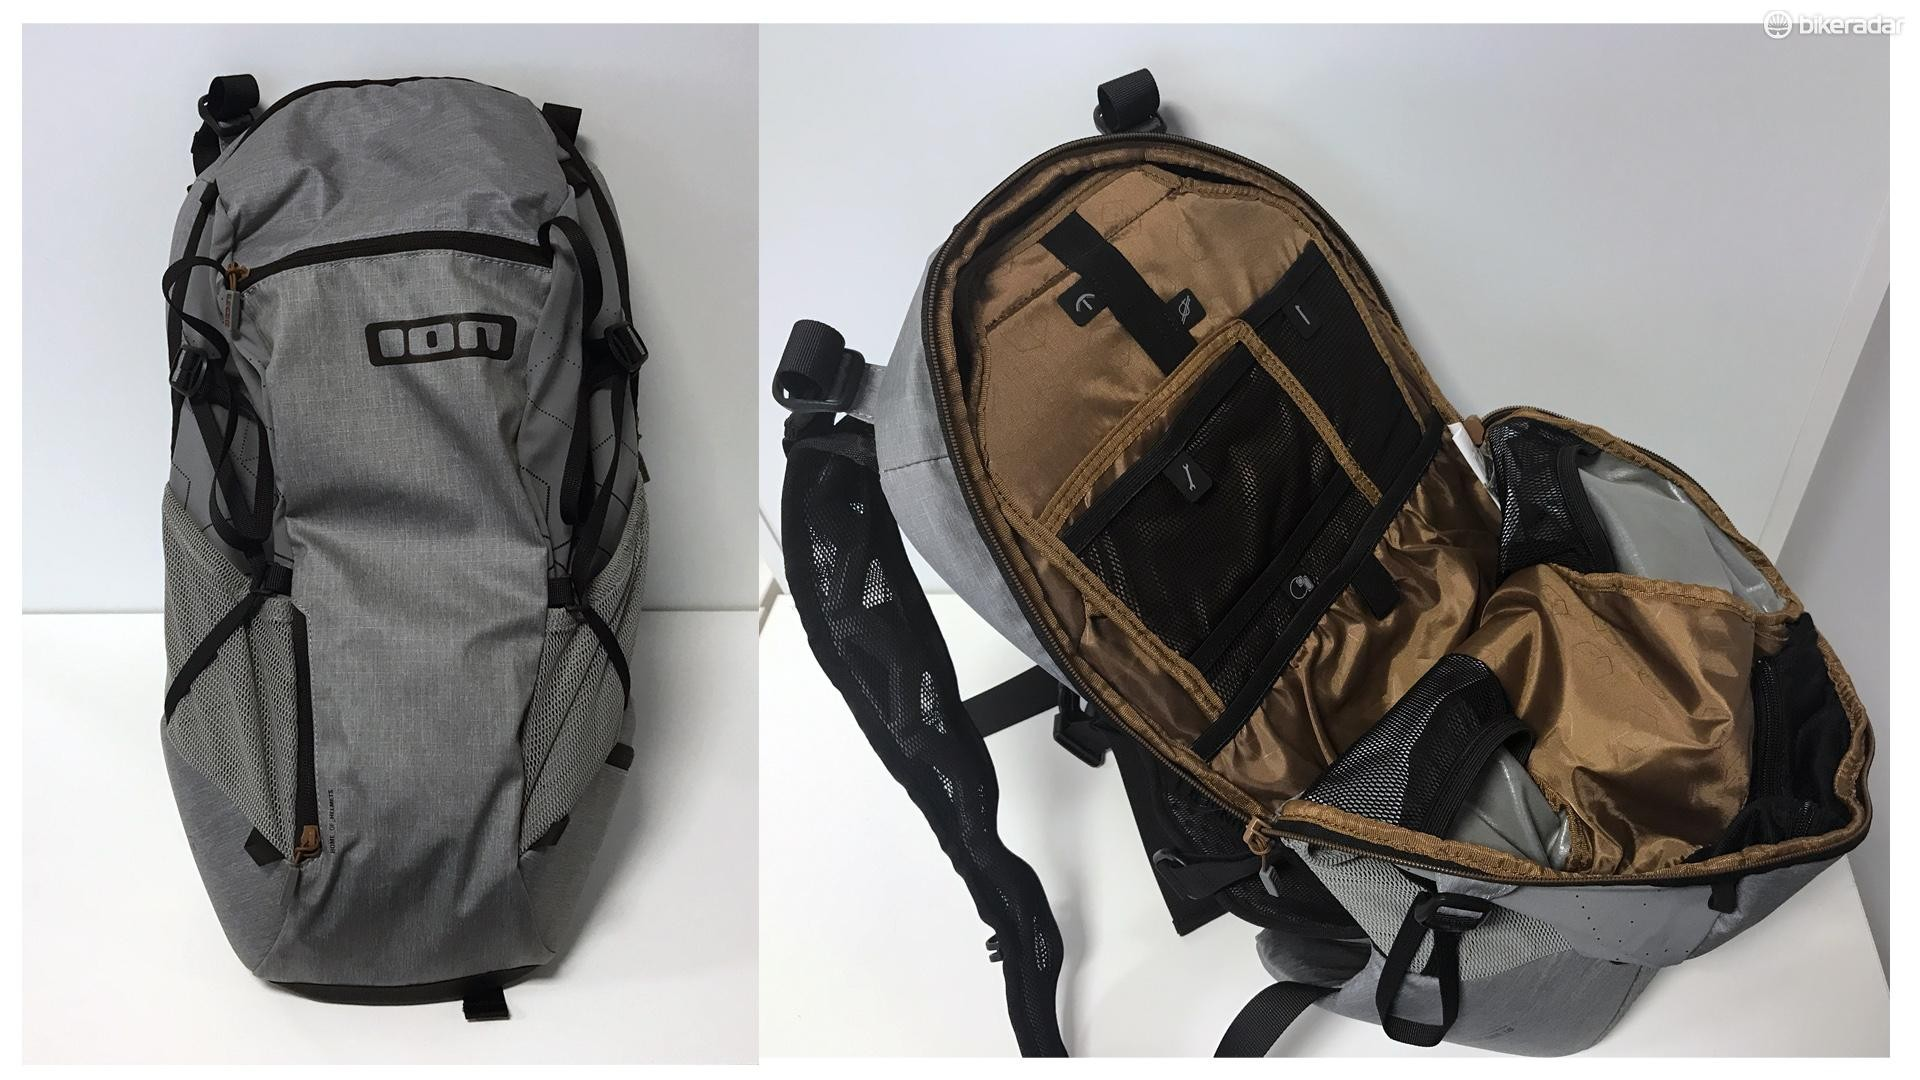 The Ion rucksack has plenty of internal space for stowing your bits